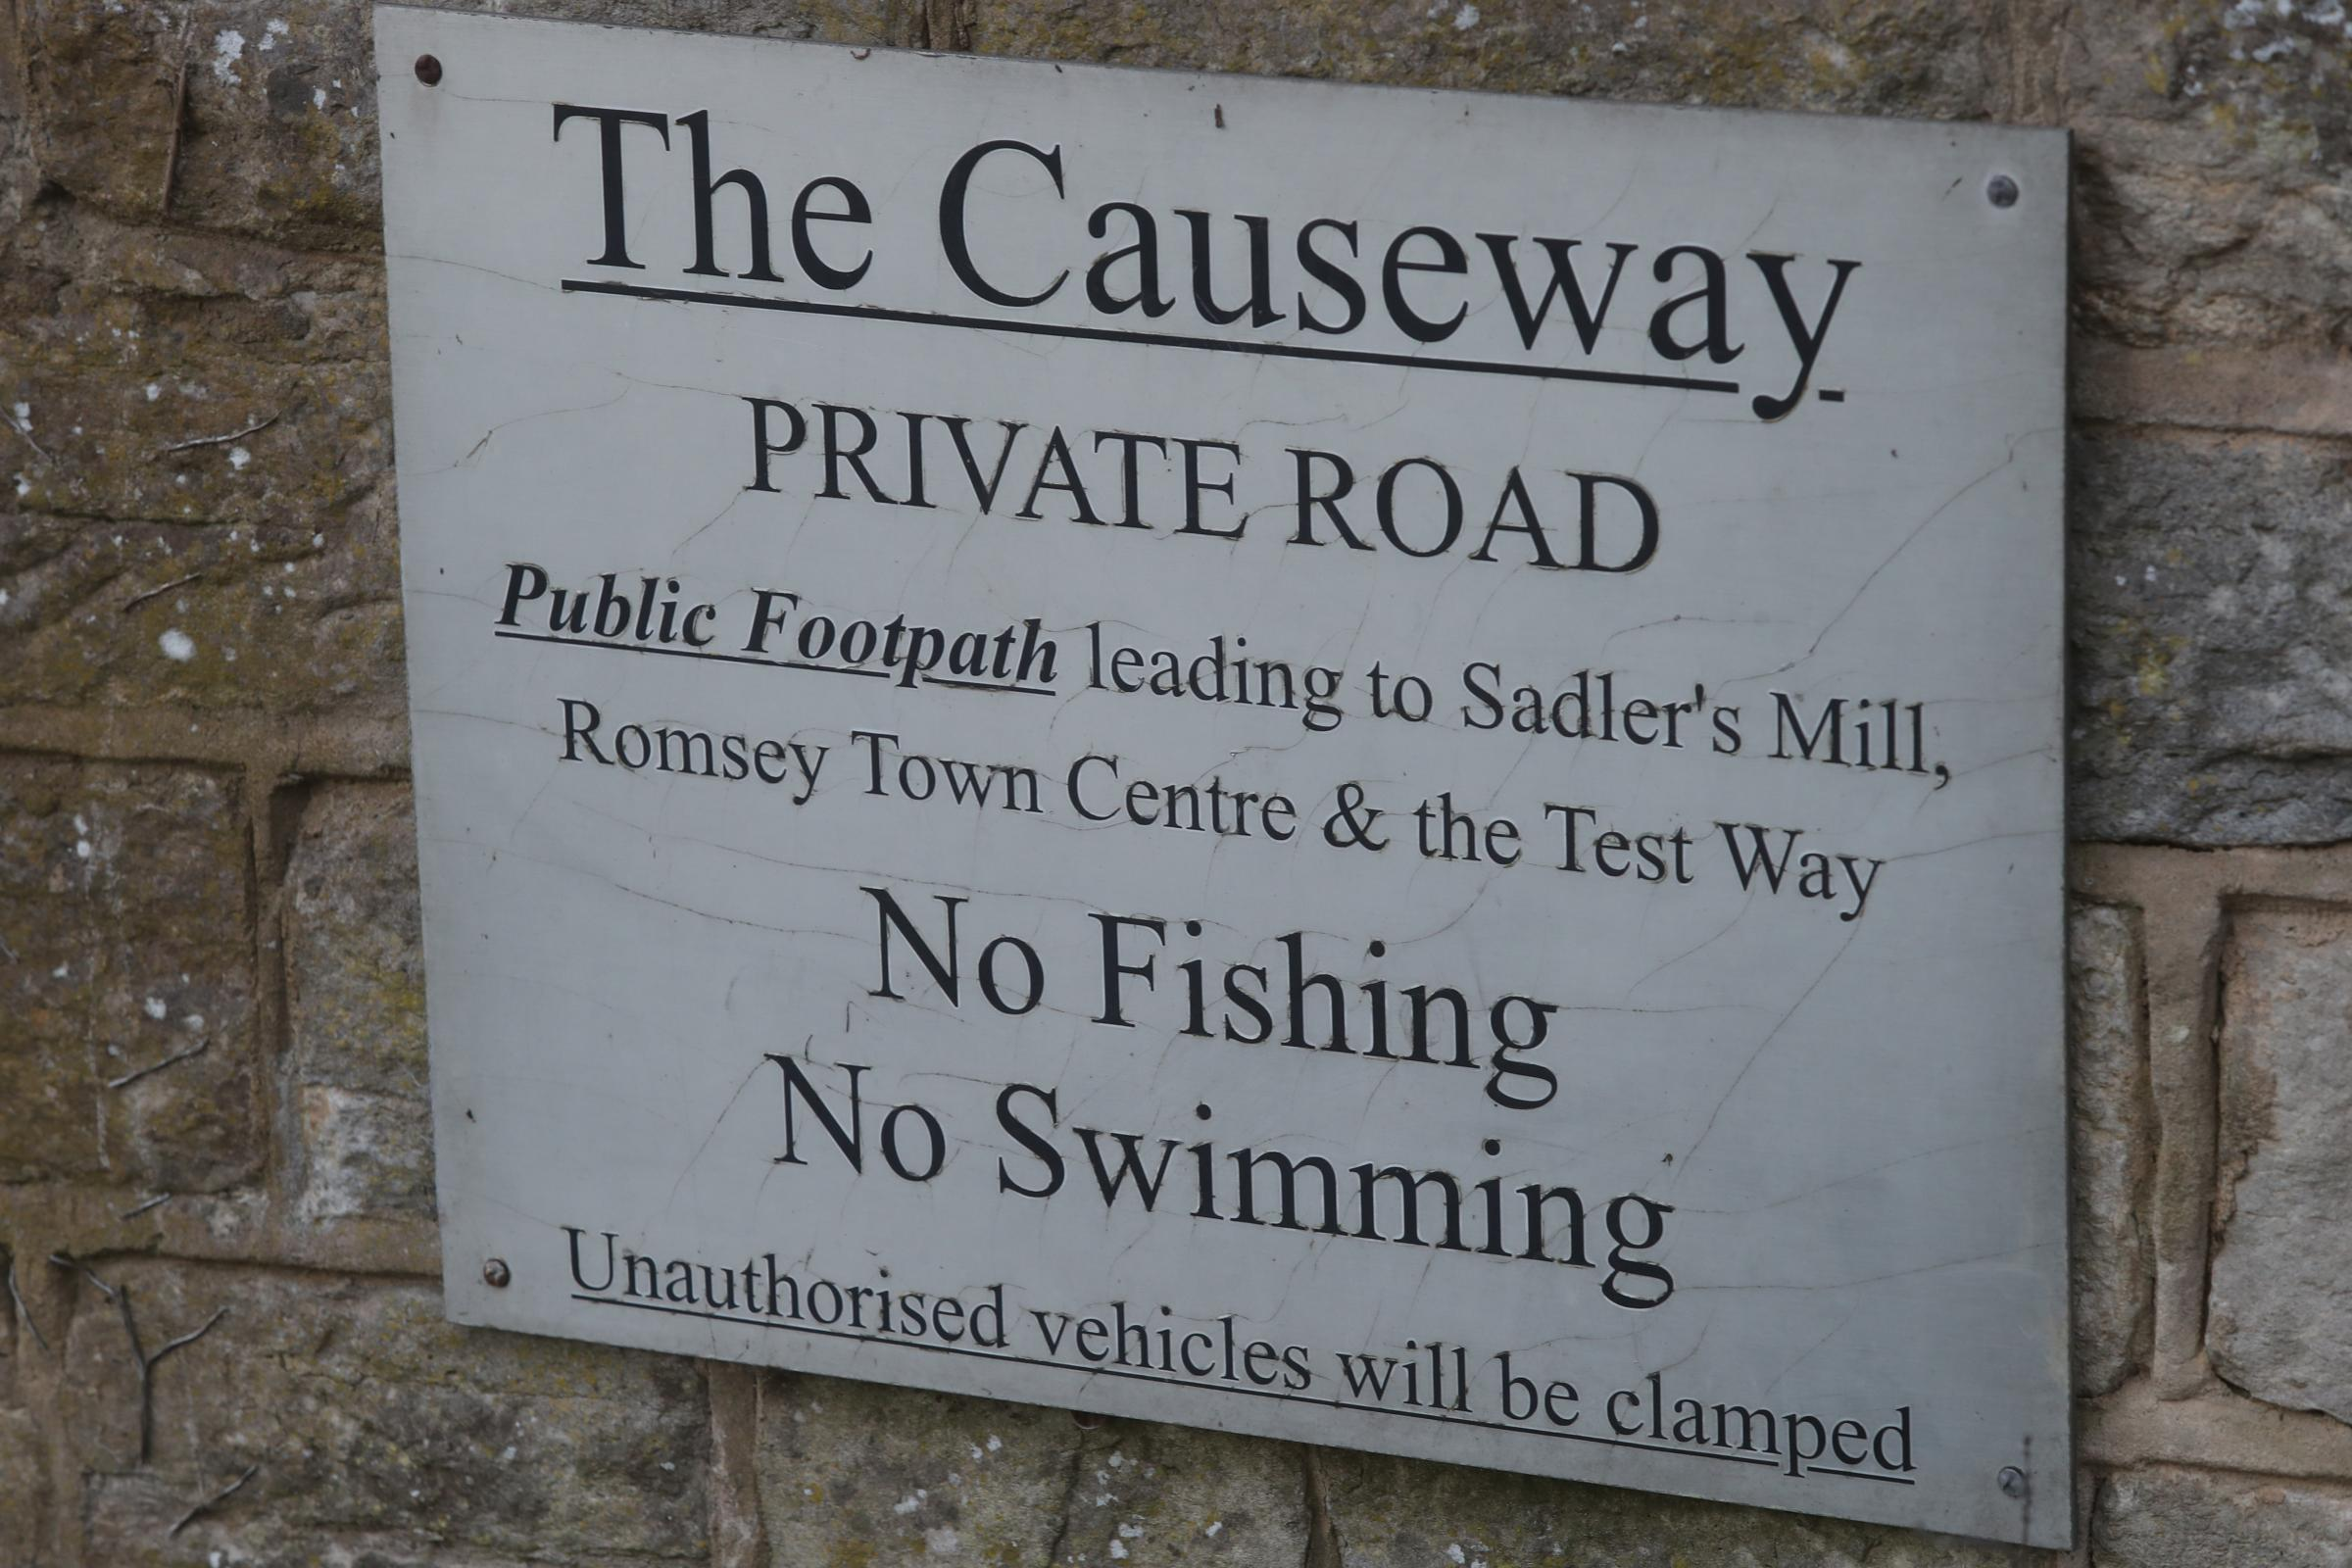 The Causeway in Romsey where there are plans to build two bridges and spillways as part of the flood alleviation scheme.